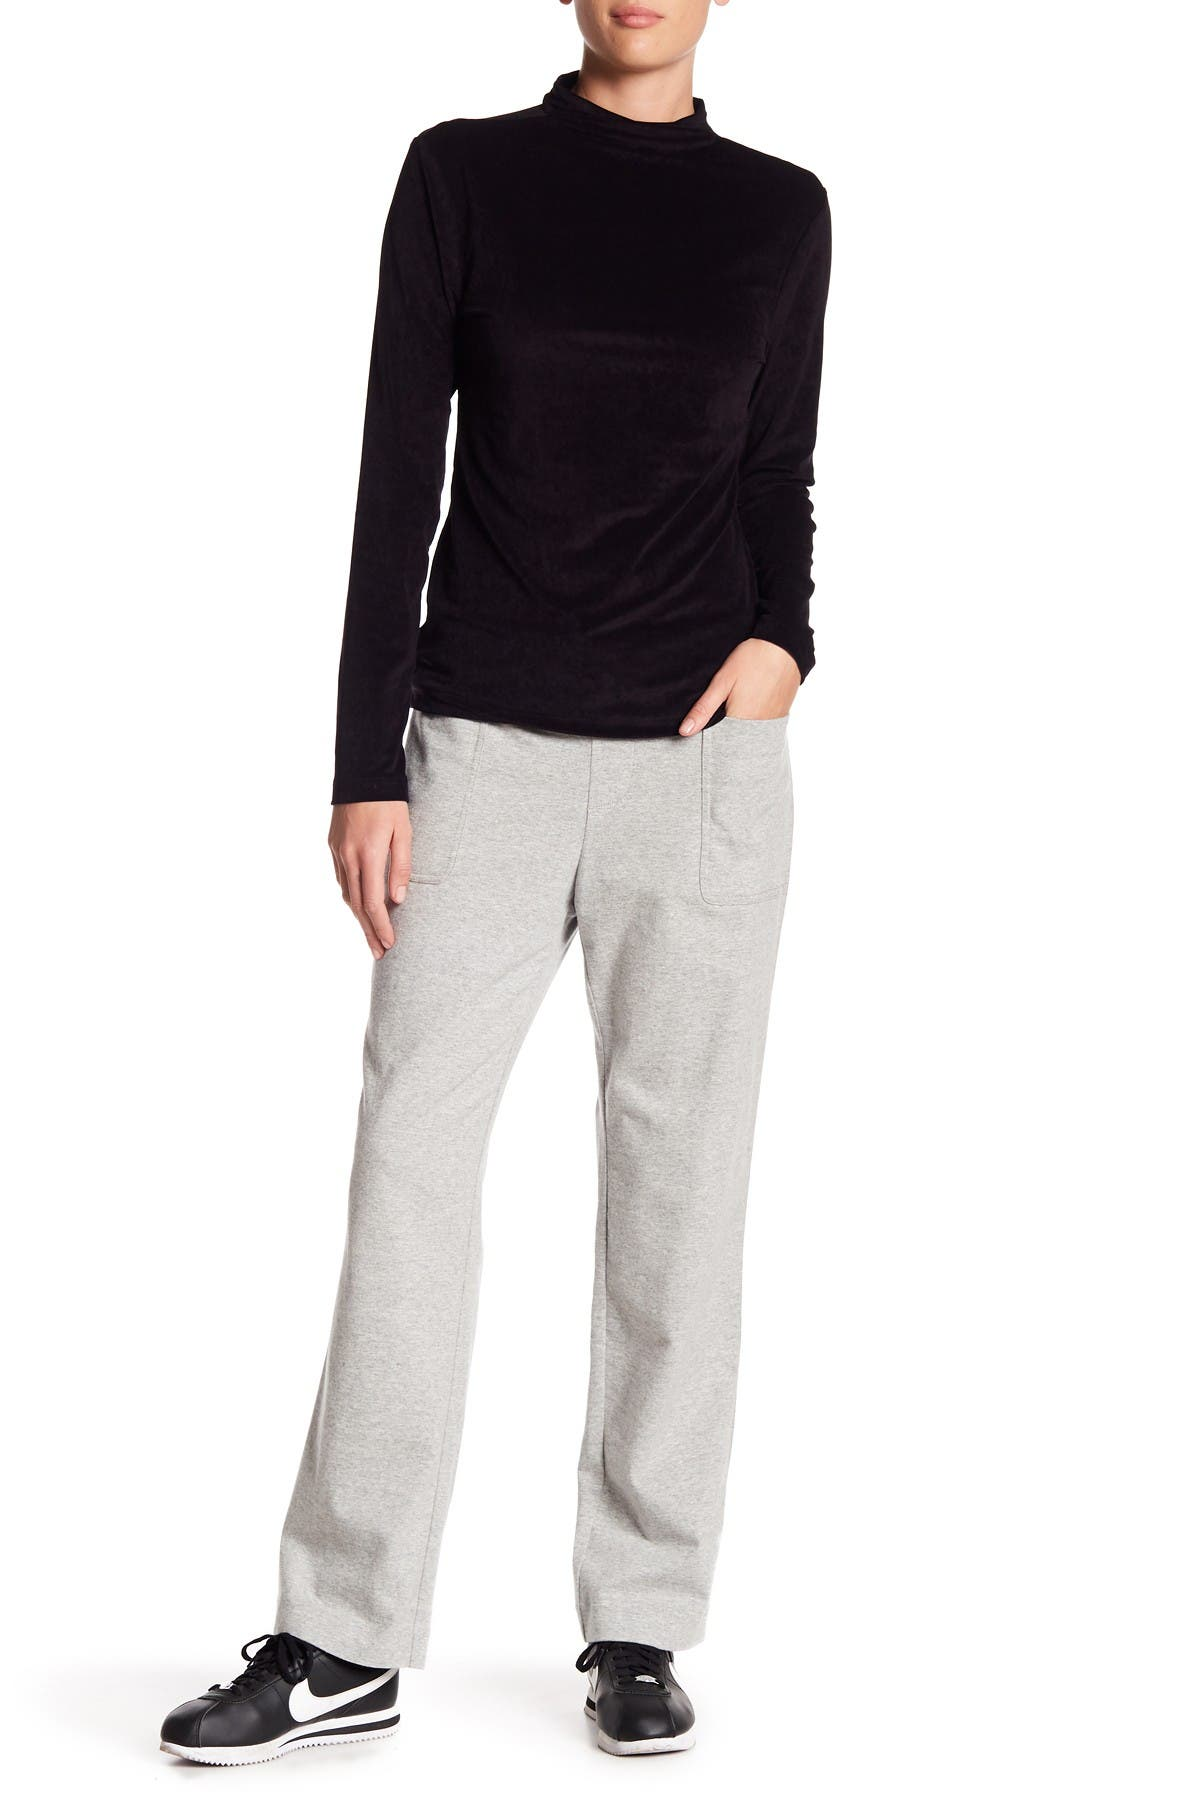 Image of James Perse Straight Leg Pants